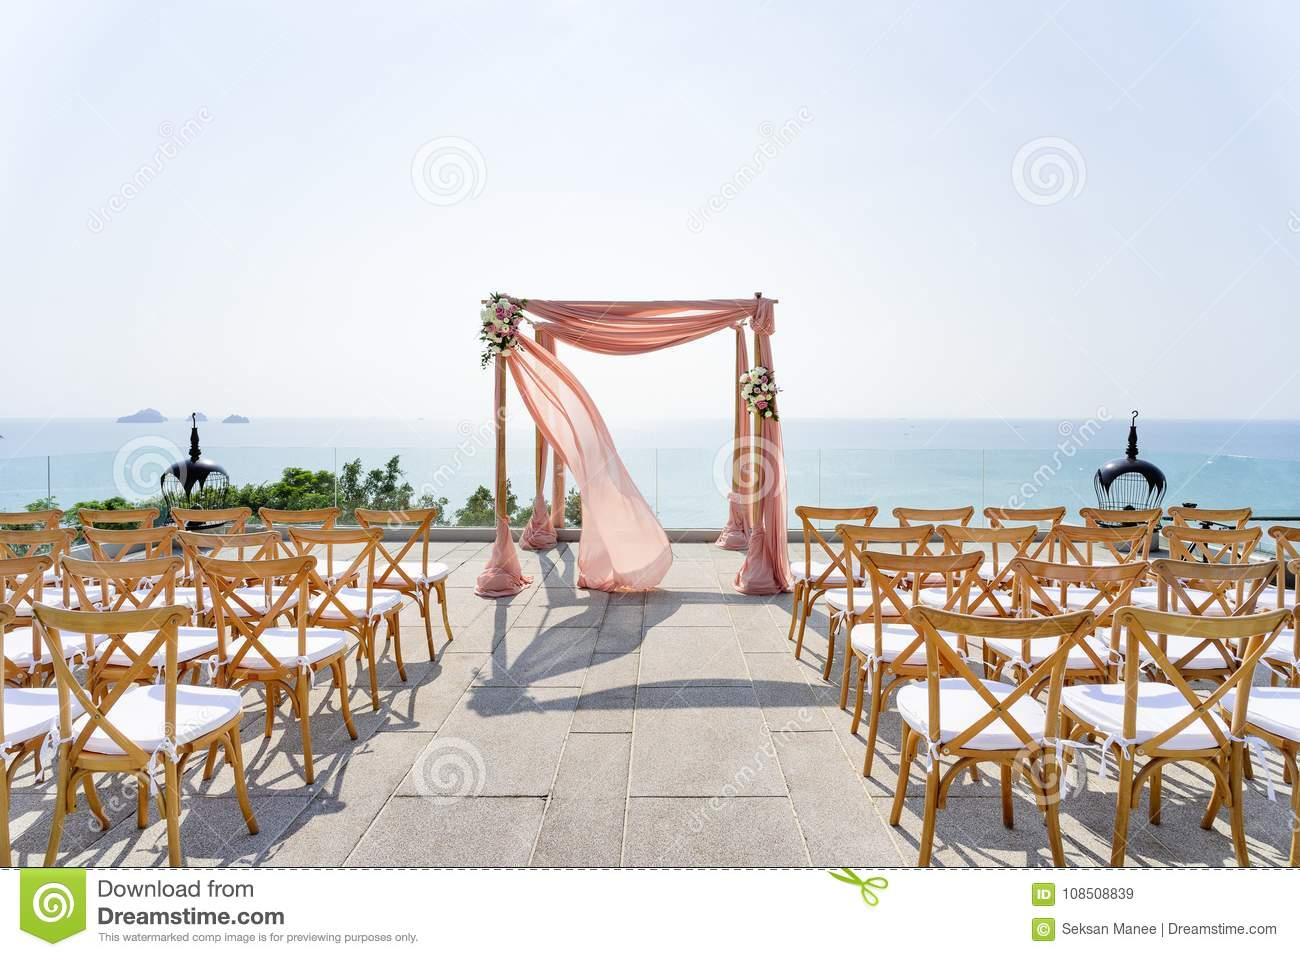 Outstanding Beach Wedding Venue With The Ocean View Background The Uwap Interior Chair Design Uwaporg